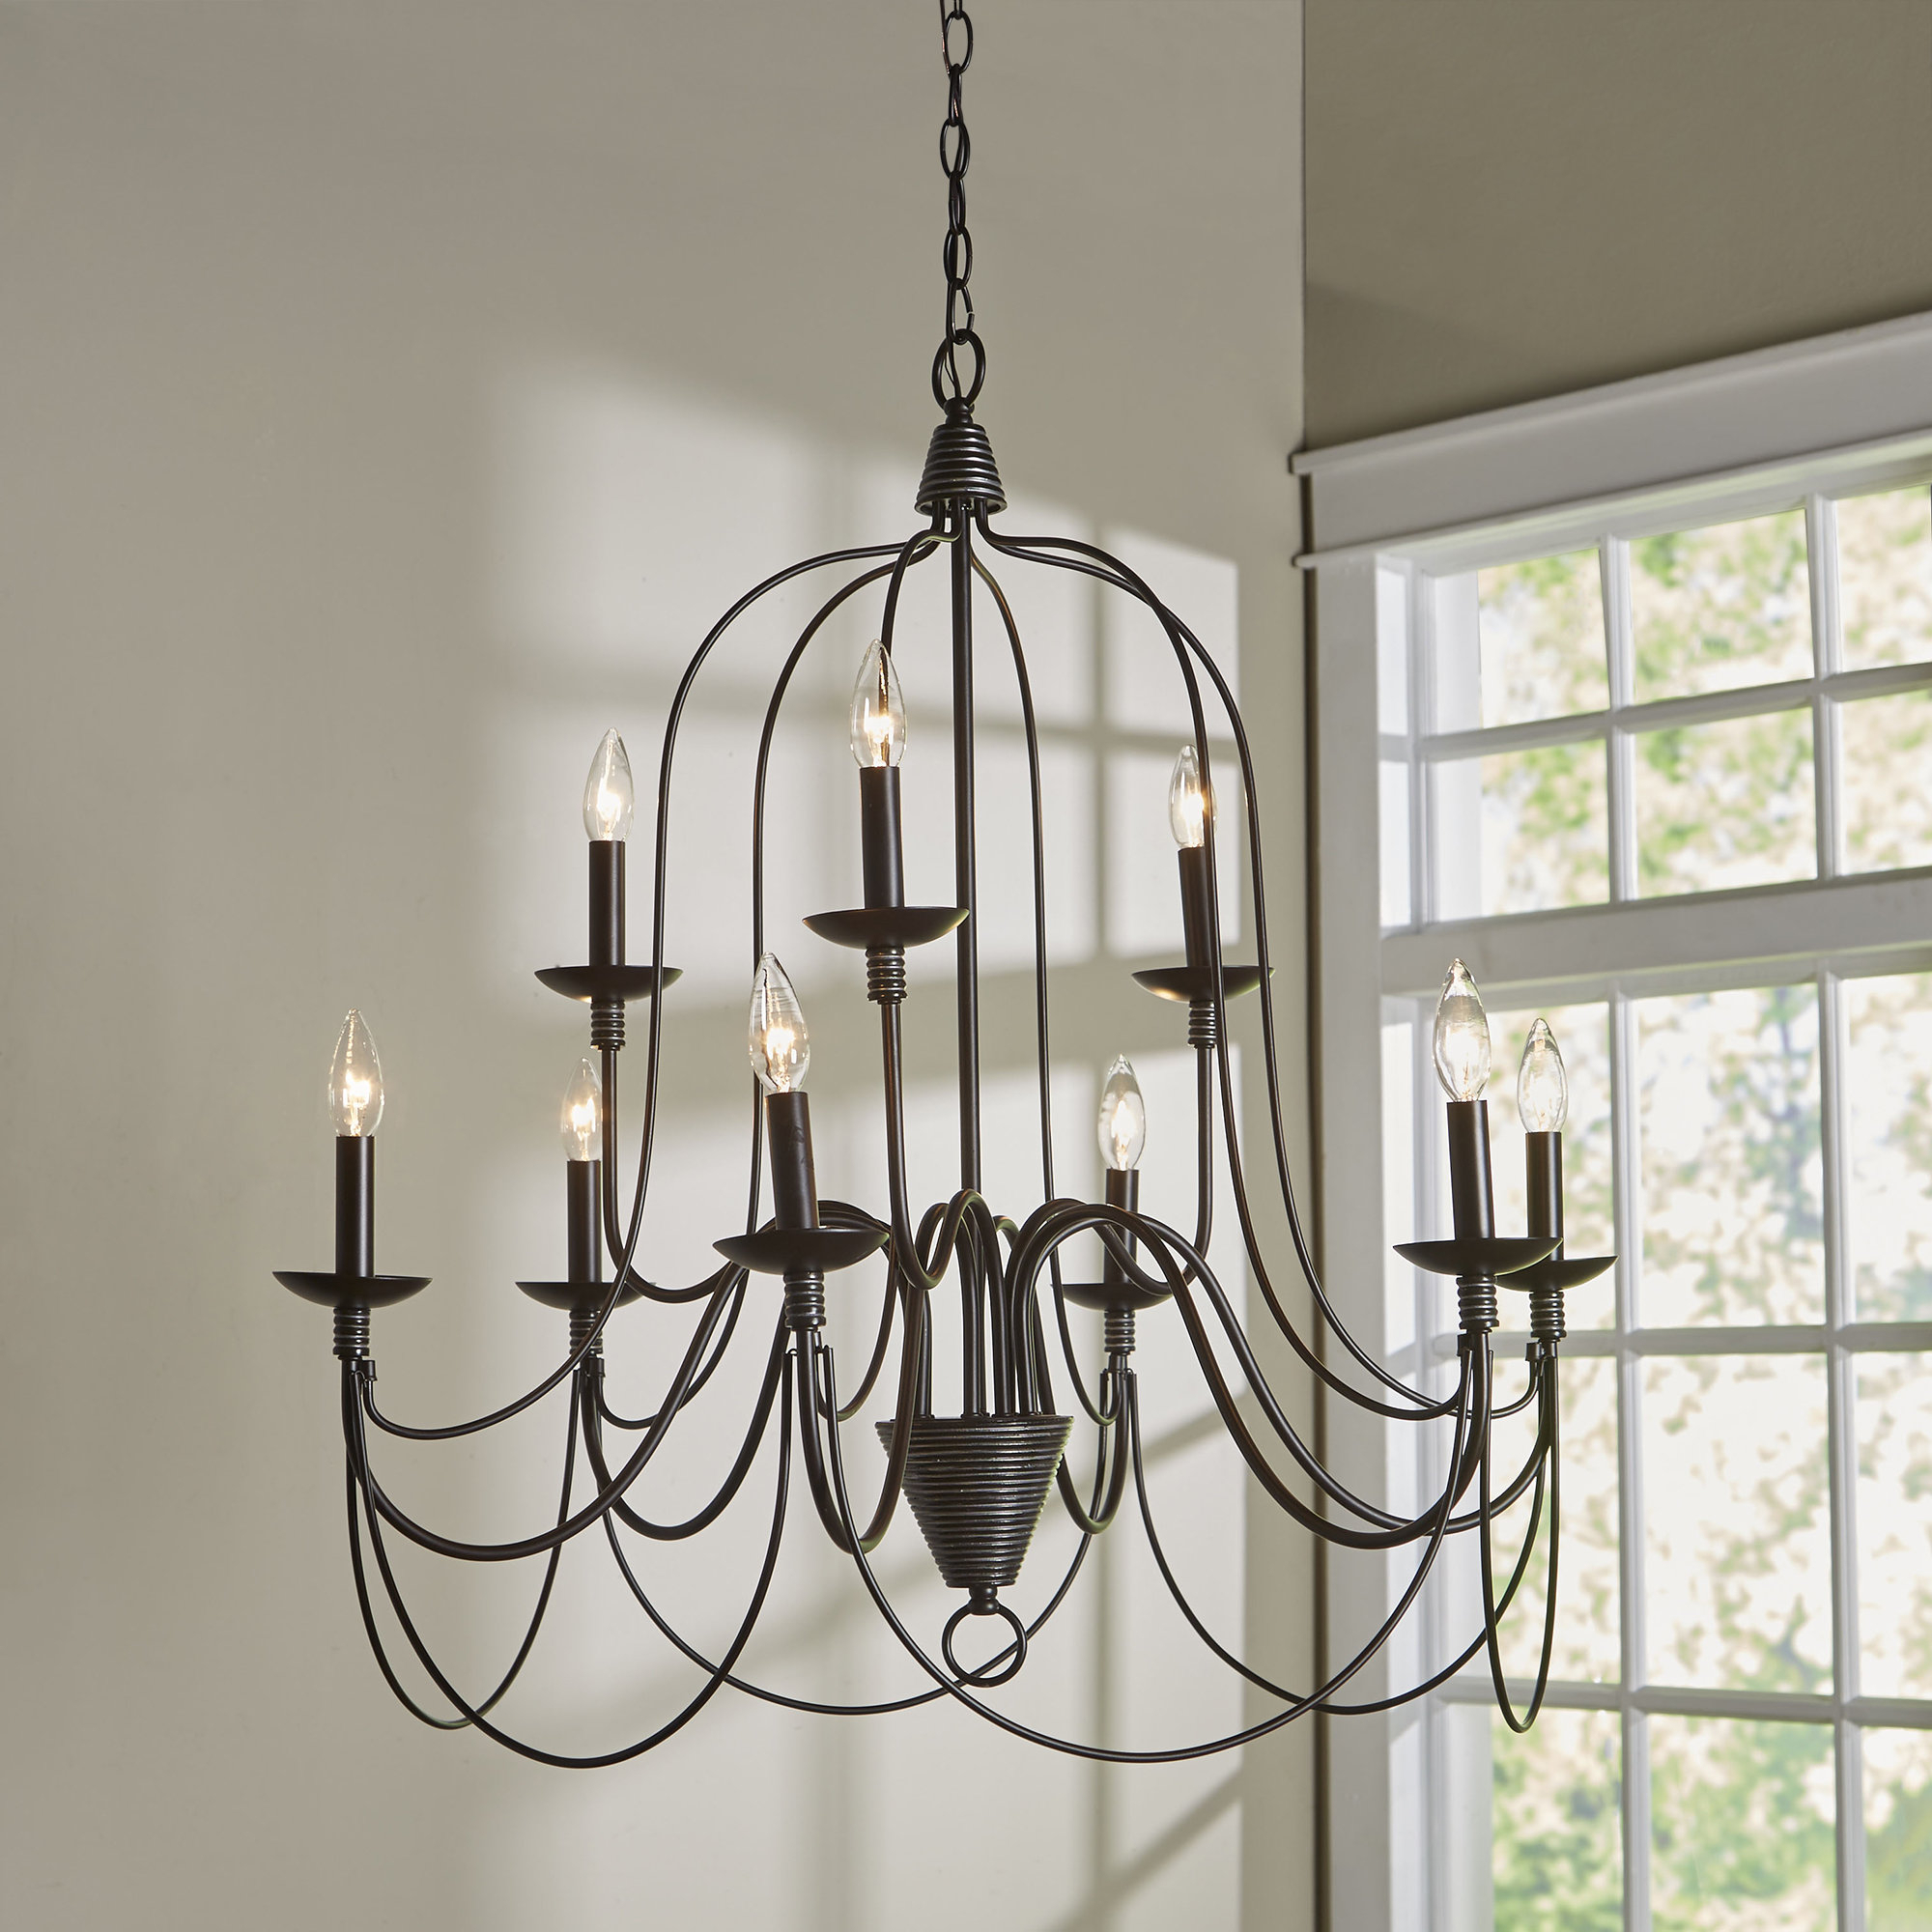 2019 Watford 9 Light Candle Style Chandelier Within Watford 9 Light Candle Style Chandeliers (Gallery 1 of 20)